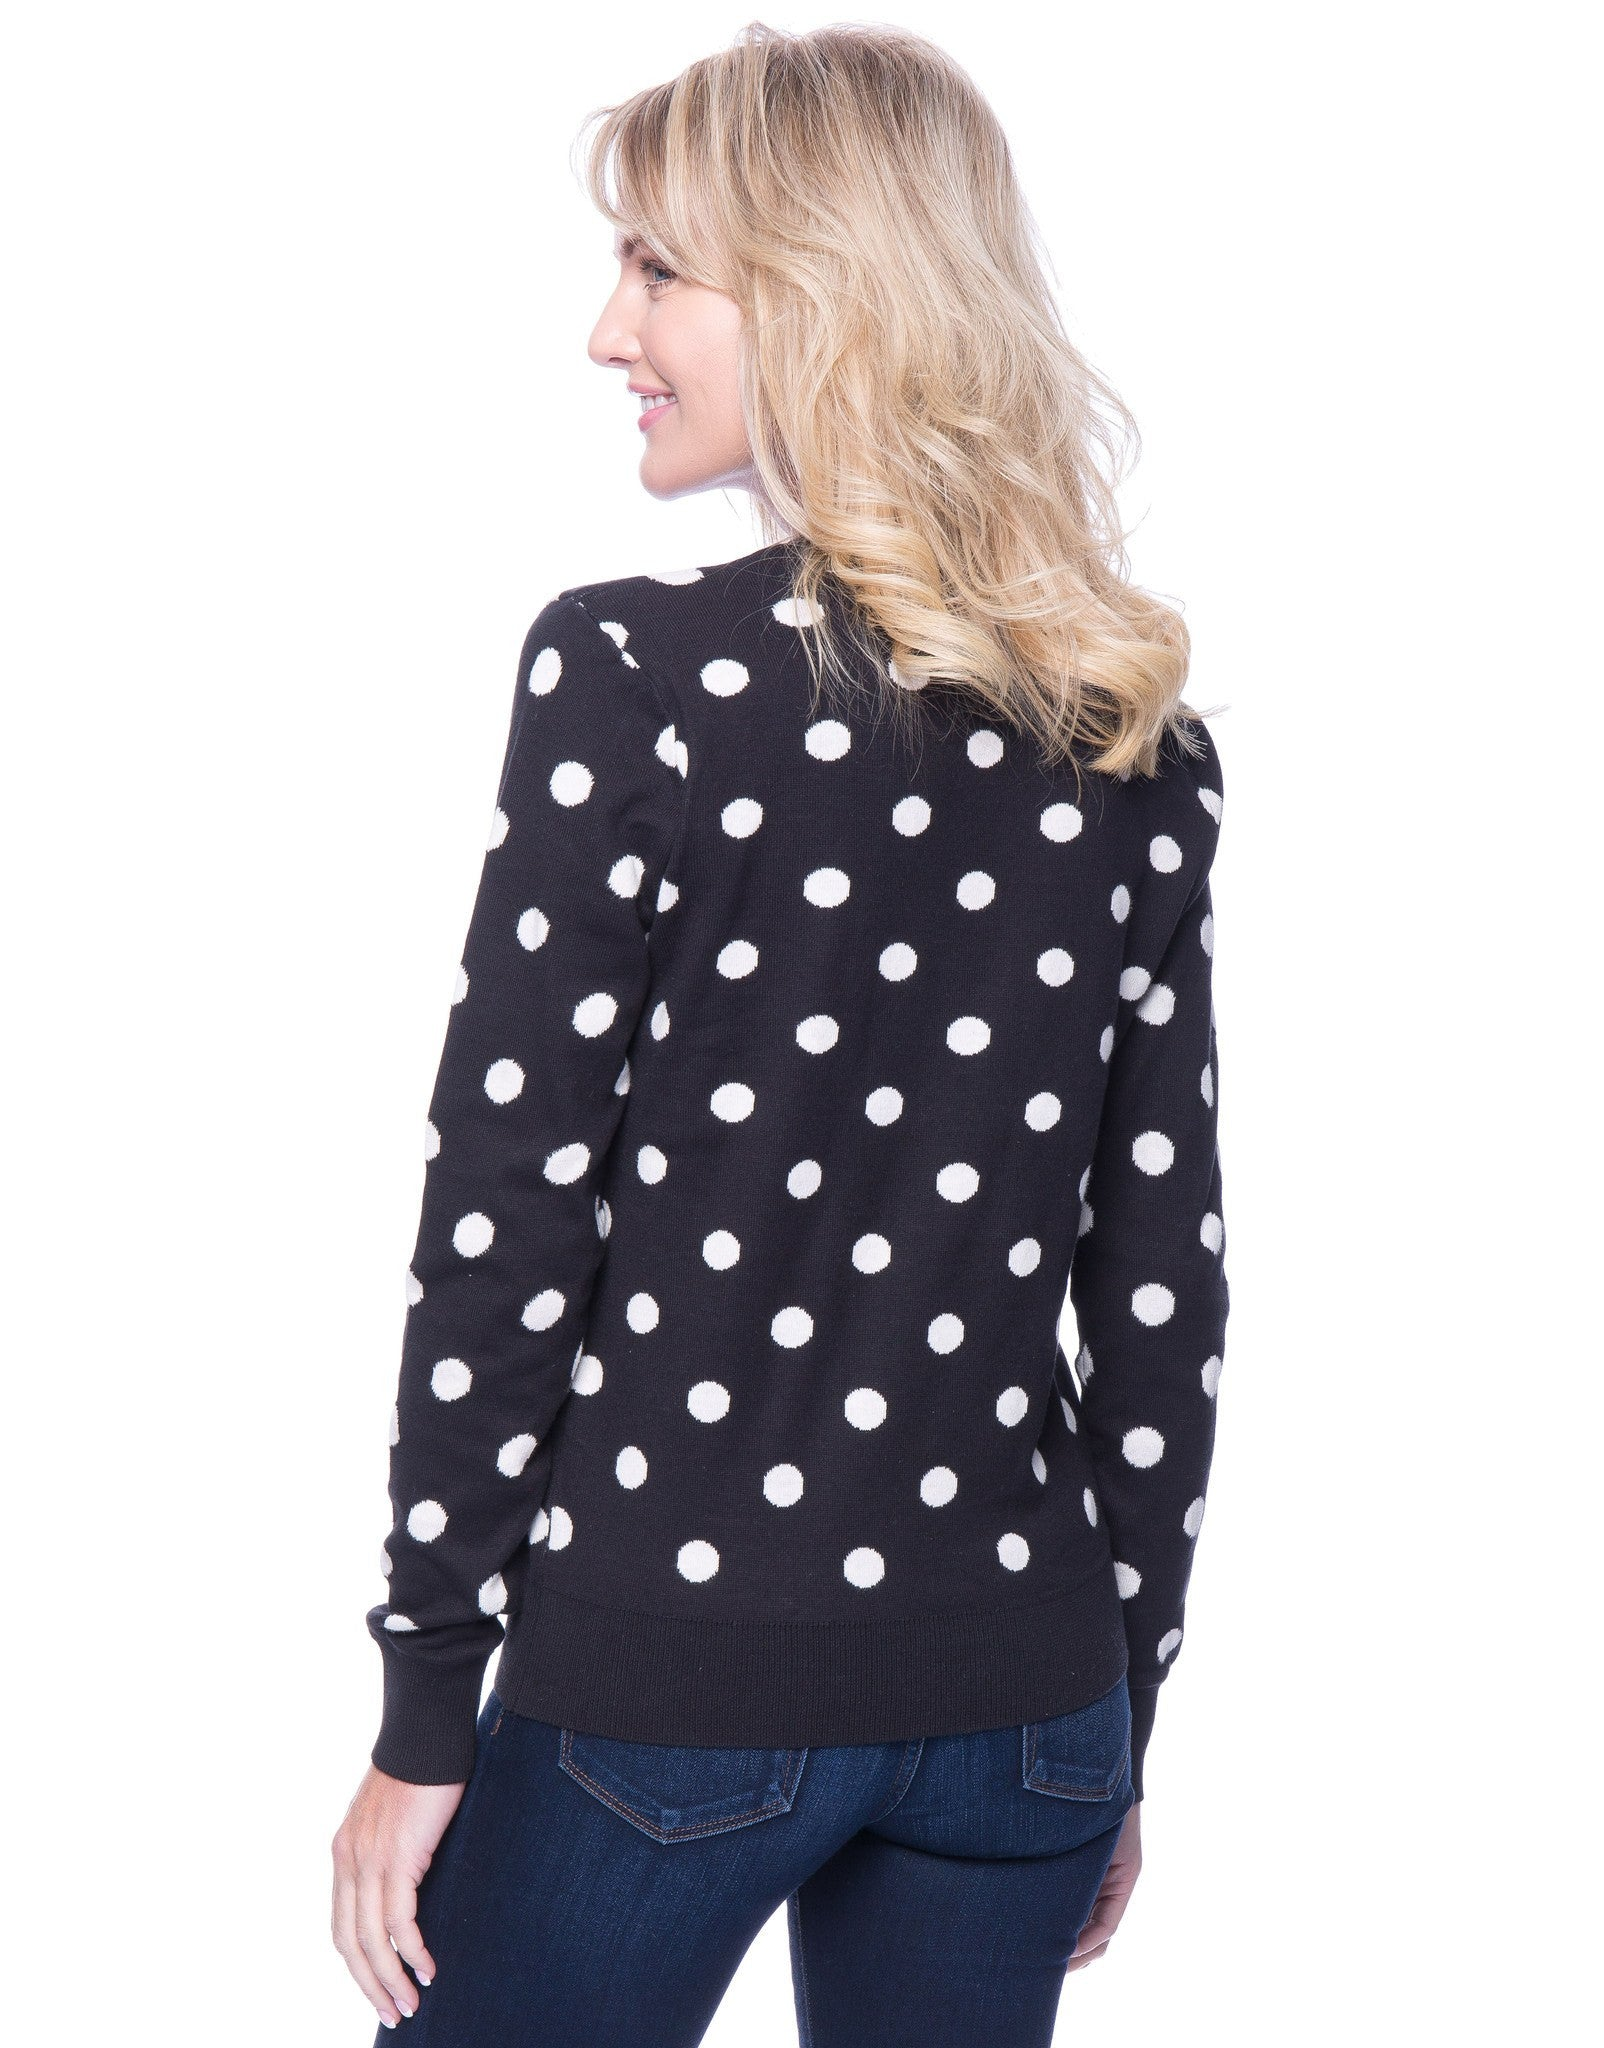 Tocco Reale Women's Premium Cotton Crew Neck Sweater - Polka Dots Black/Ivory